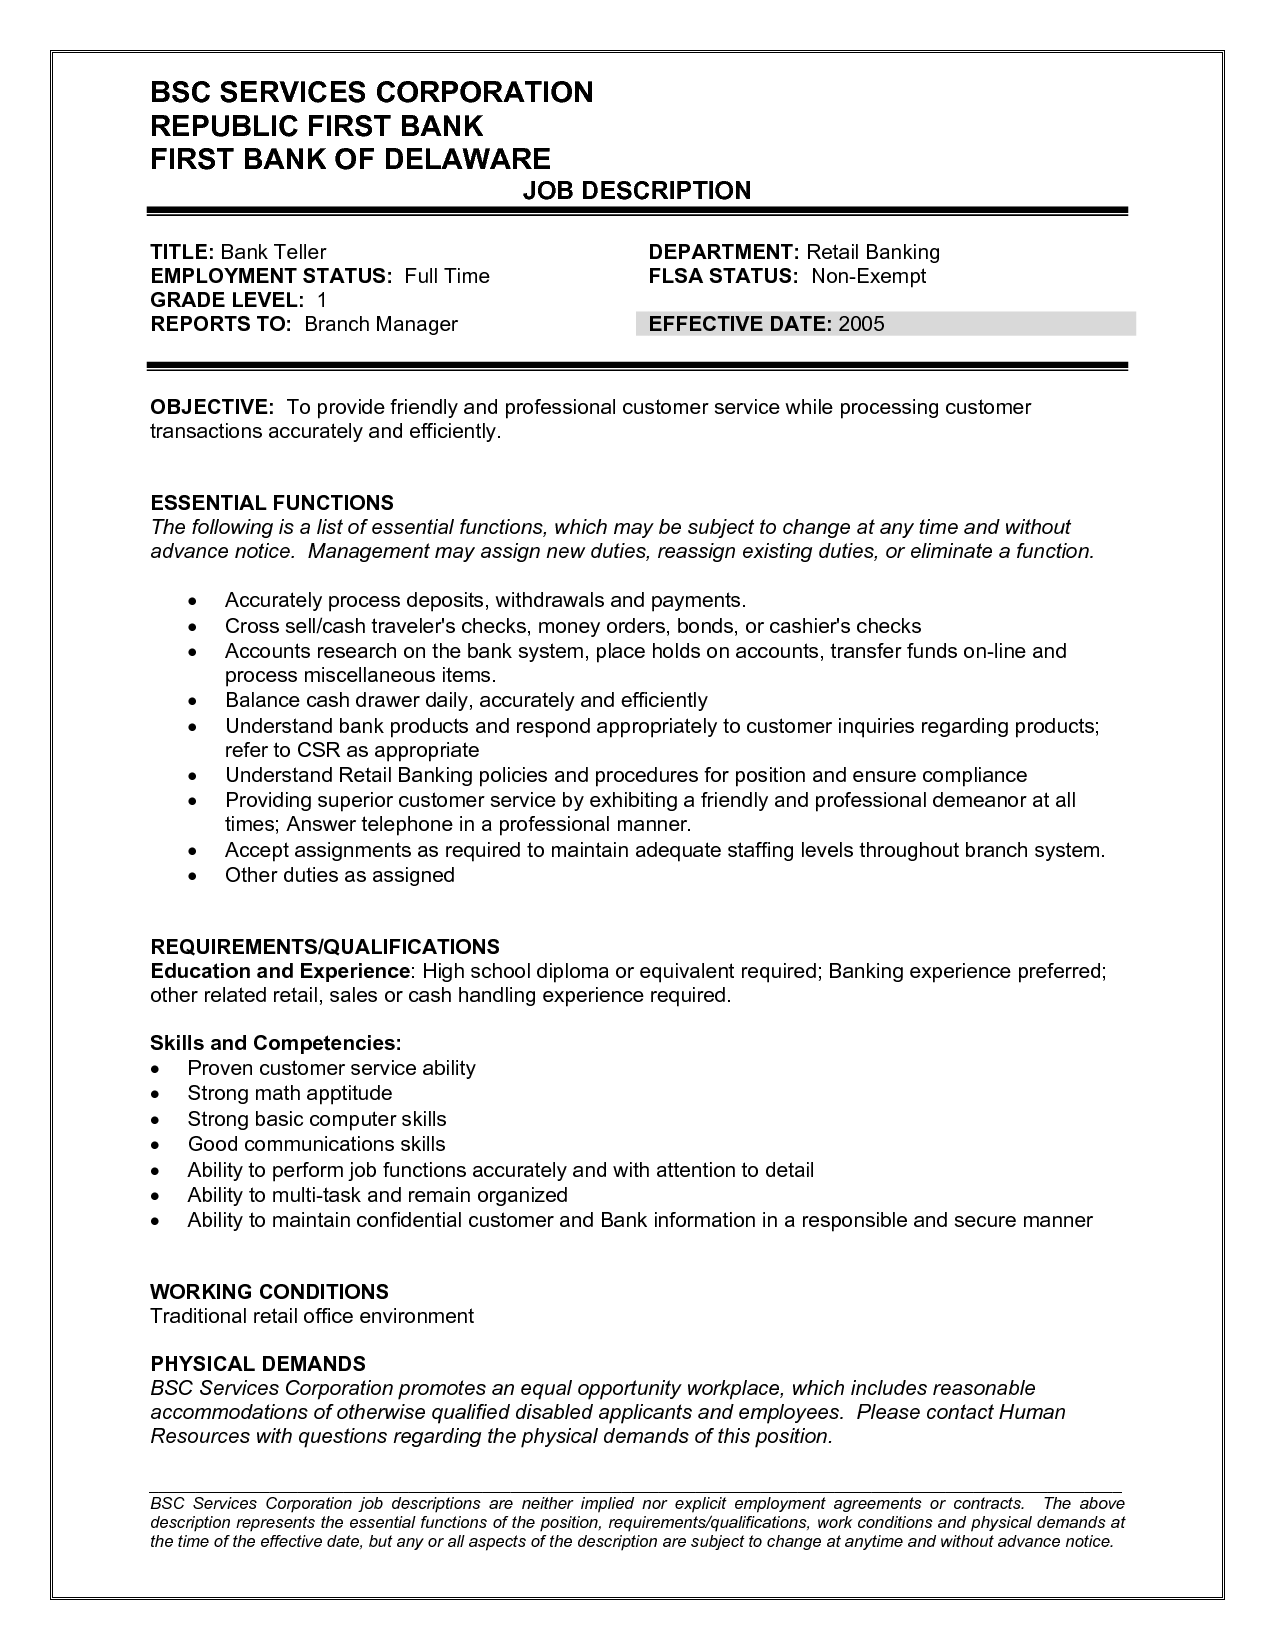 Teller Job Description Resume Bank Teller Job Duties And Responsibilities  Resume For Teller